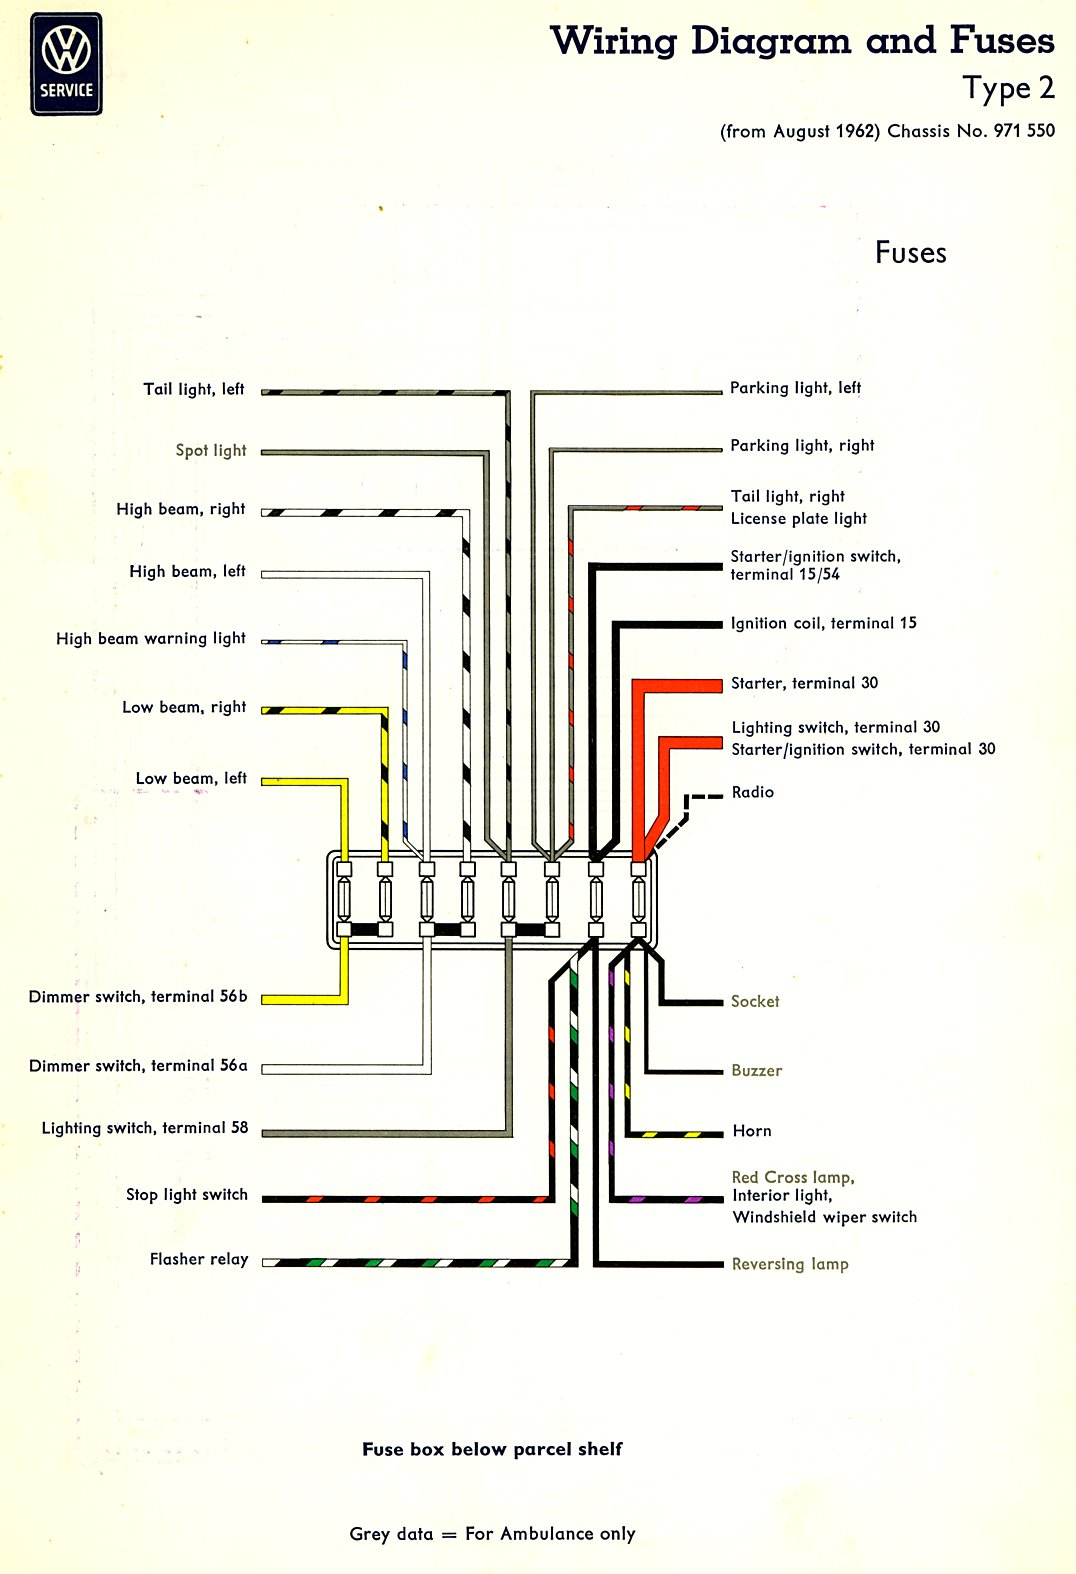 bus_63_fuses thesamba com type 2 wiring diagrams 1972 c10 fuse box at gsmportal.co